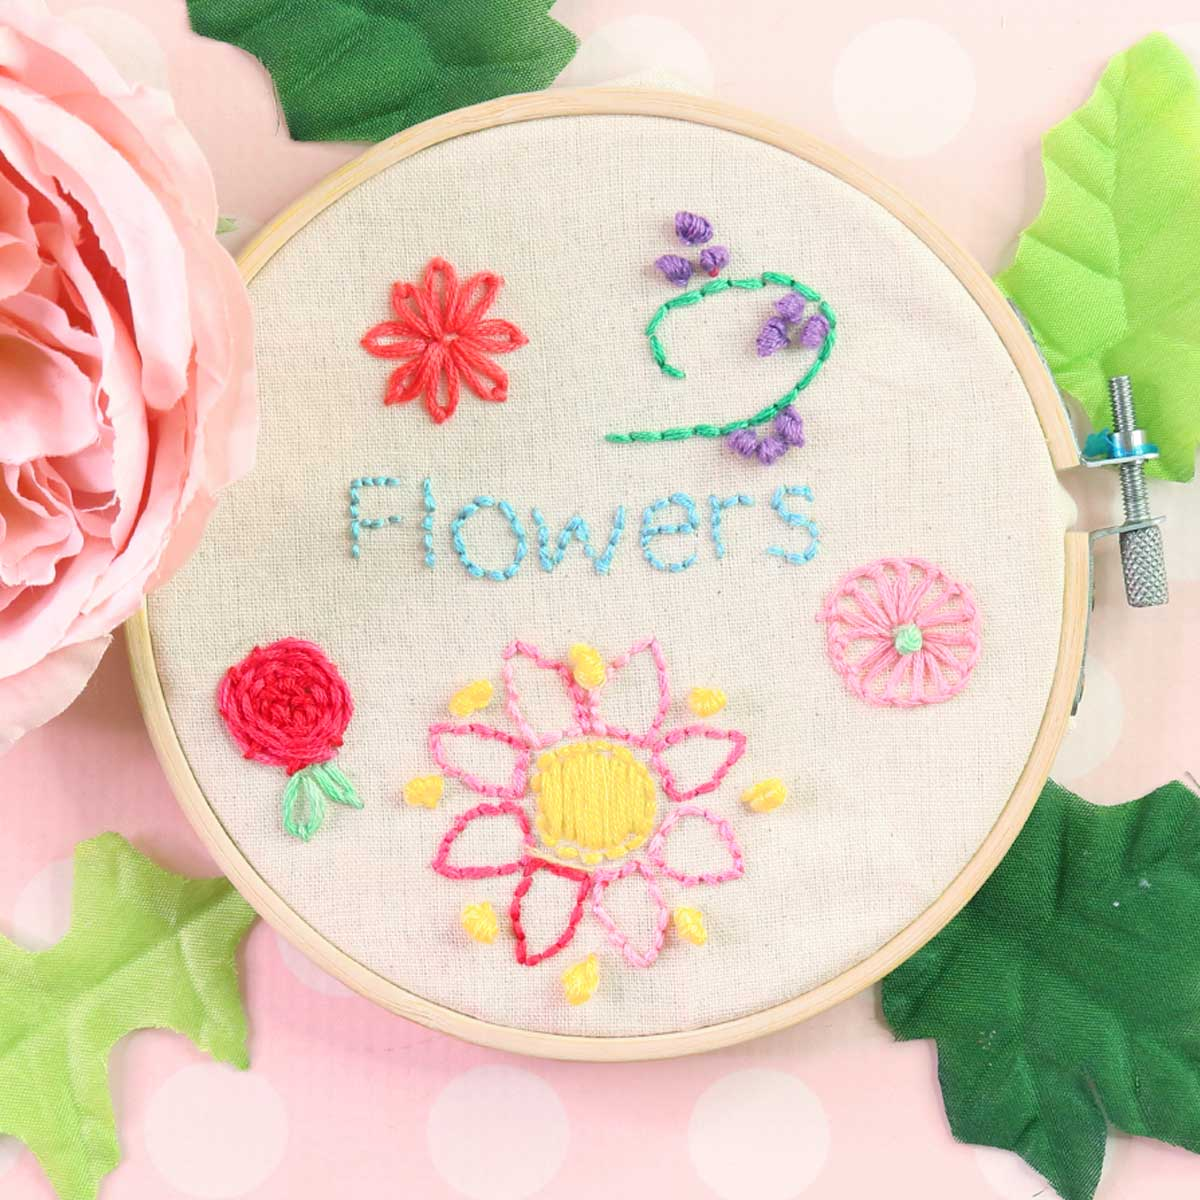 Embroidery Flowers   The 20 Easiest for Beginners   TREASURIE